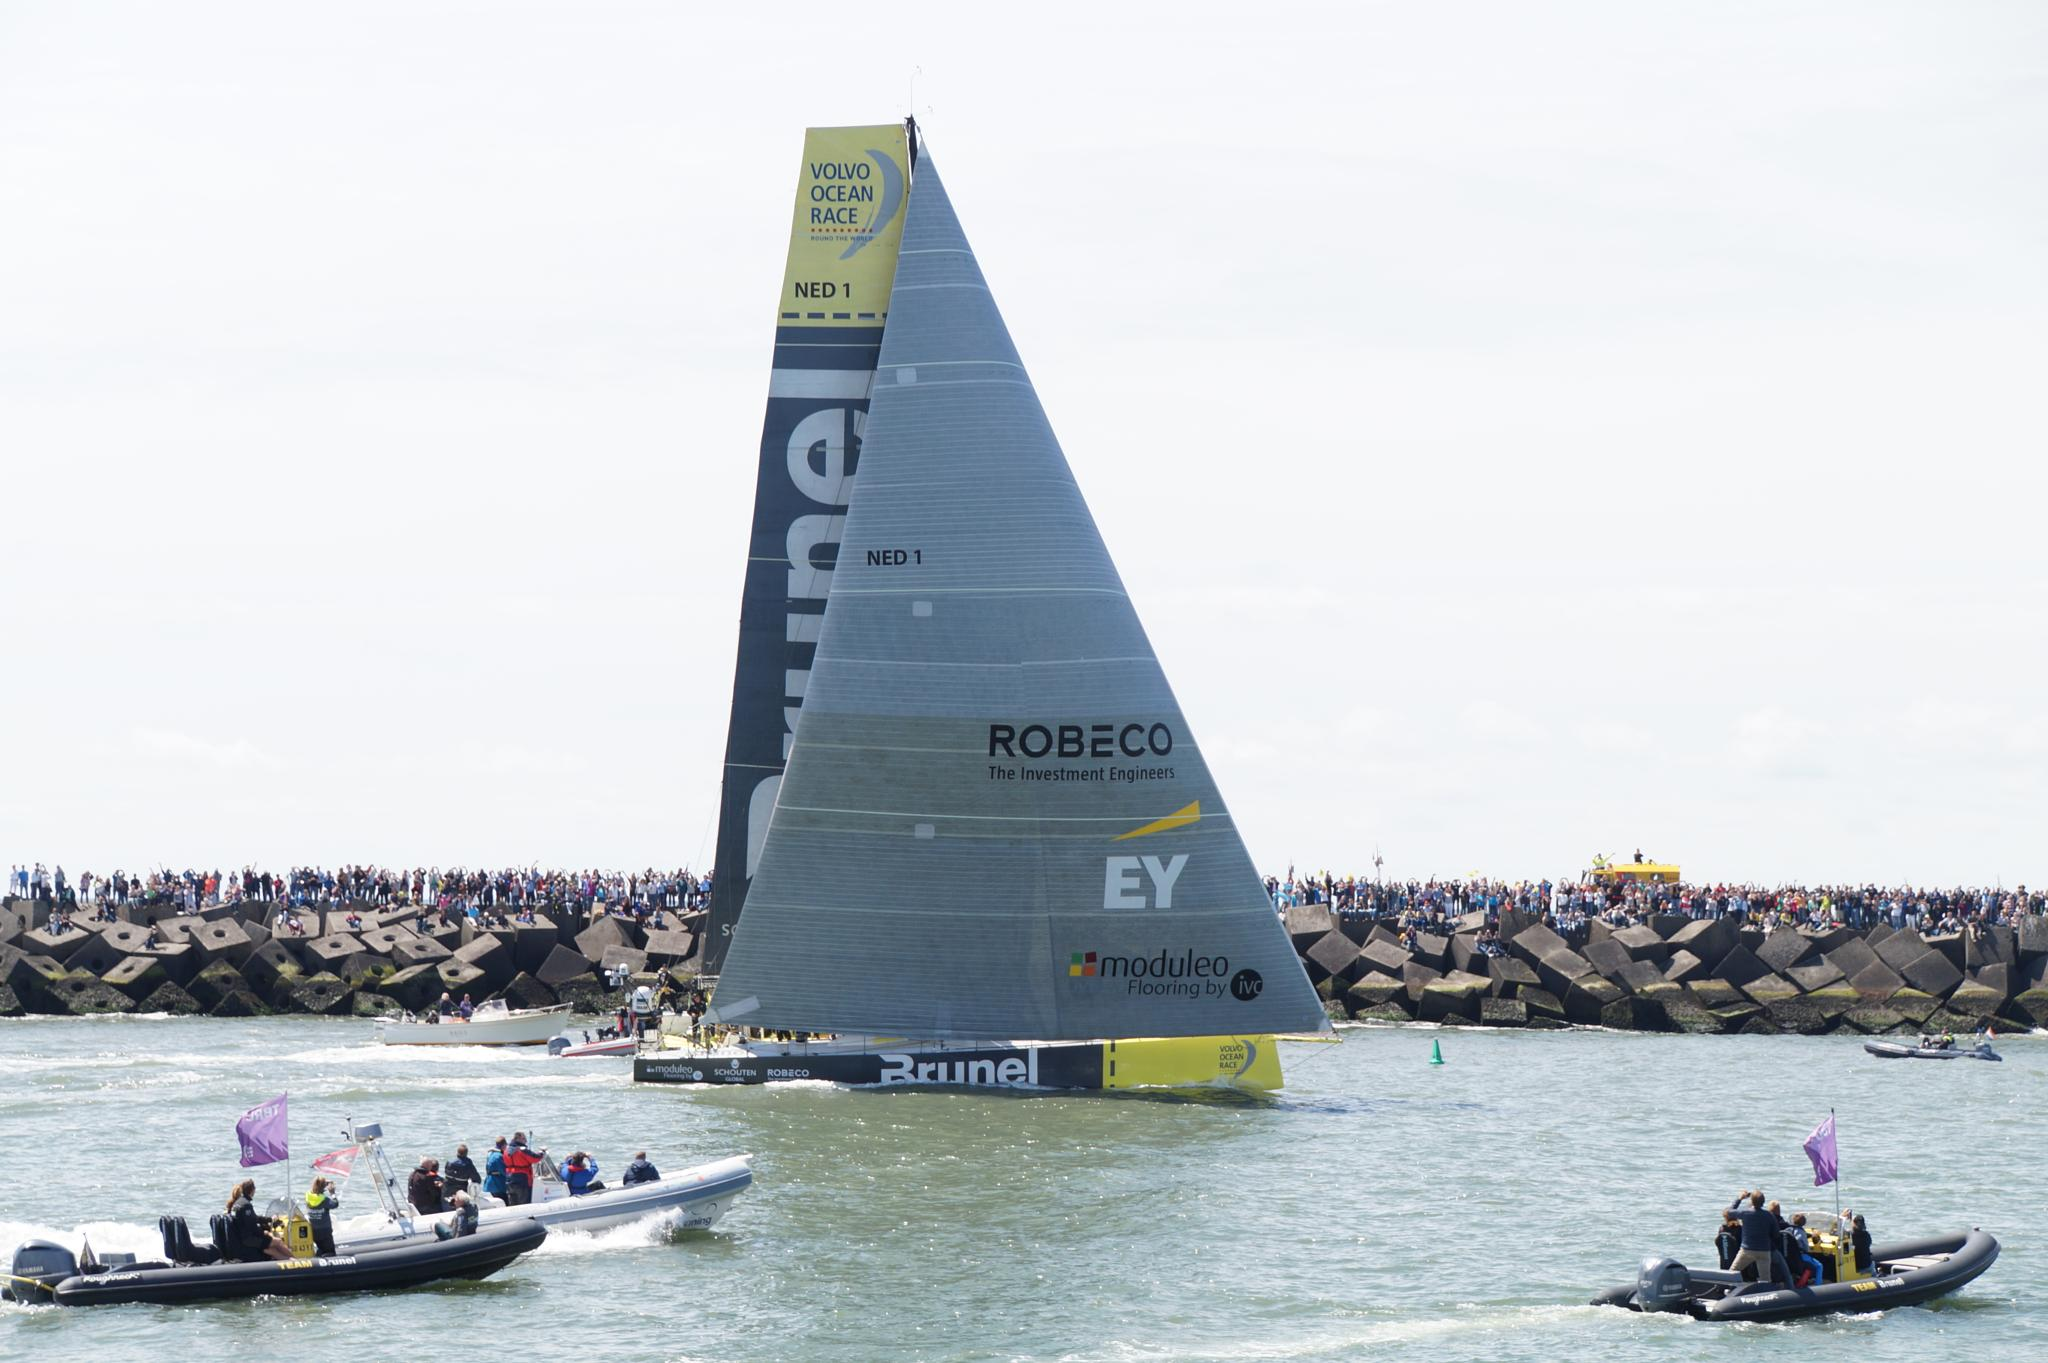 Re-start of Volvo Ocean Race in Scheveningen by Frans van Zaalen